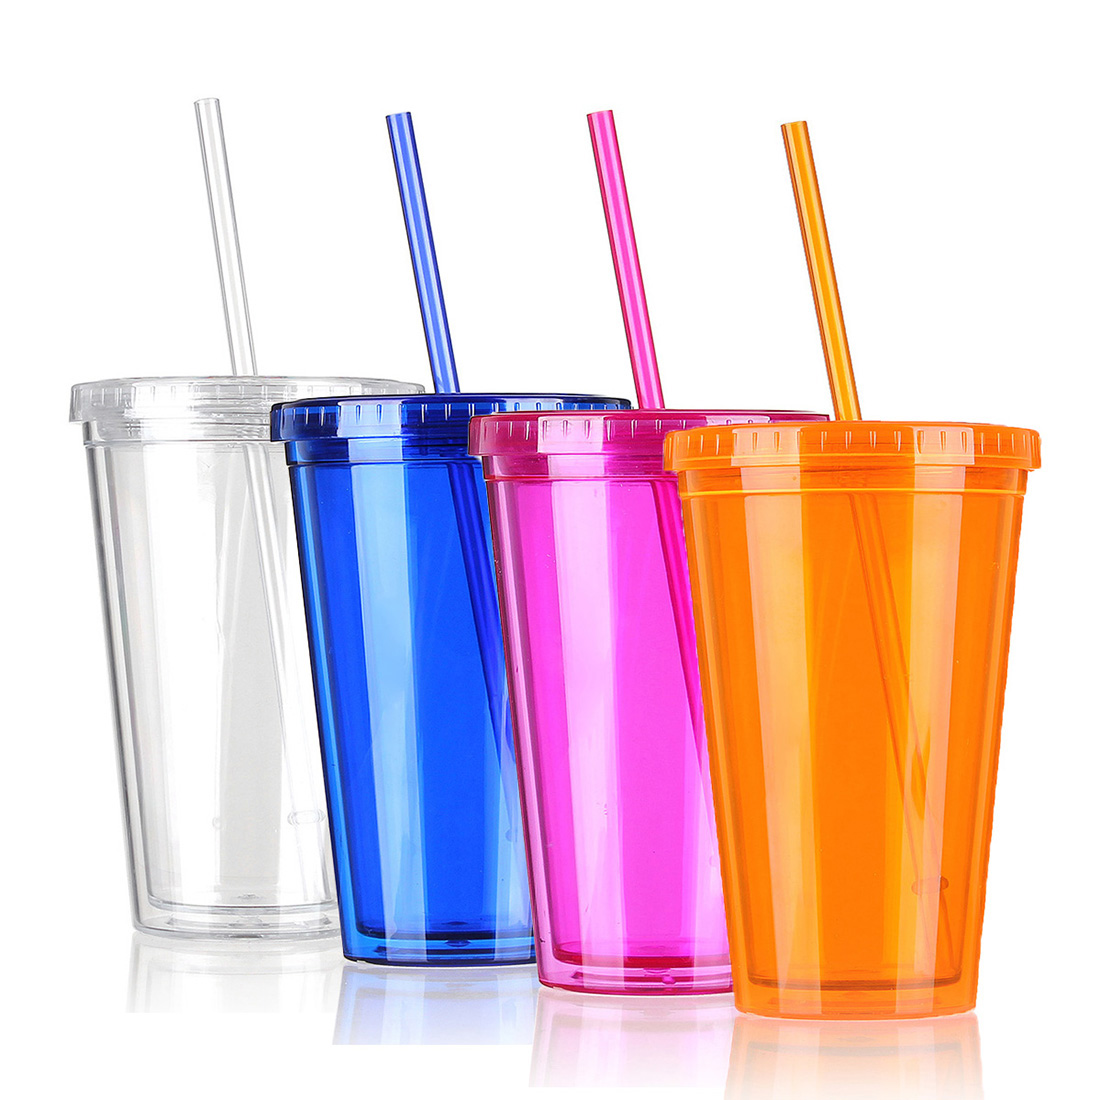 Are you looking for a durable, double insulated, condensation reducing, BPA free cup that you can take anywhere? Look no further! Wholesale Accessory Market is the go-to source for safe, eco-friendly, wholesale plastic straw cups and tumblers.